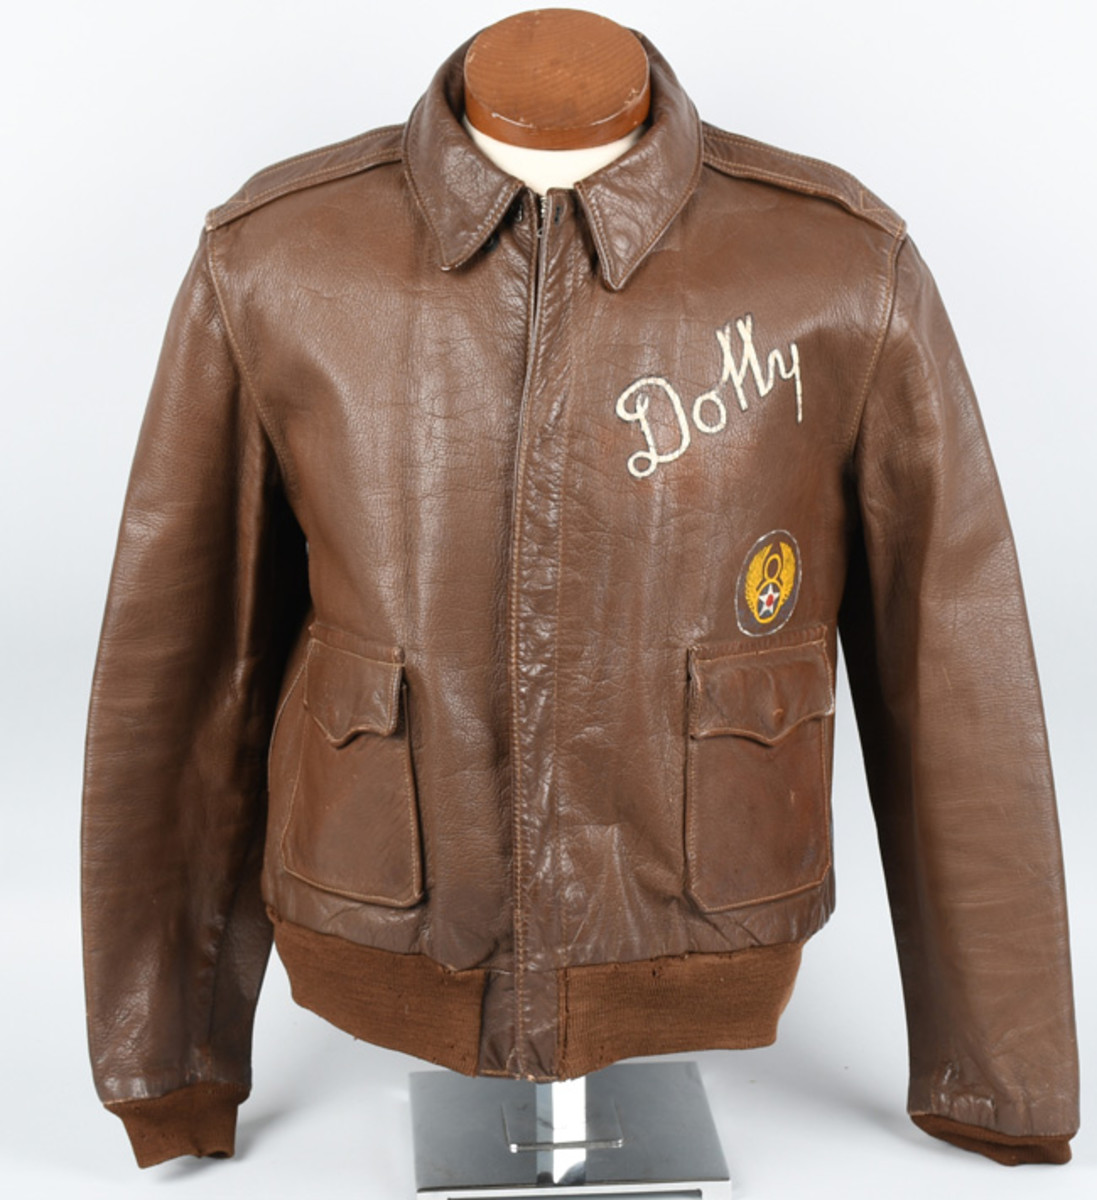 Original WWII A2 flight jacket that belonged to U.S. B-17 pilot Roland Leroy Hess of 8th Air Force, 379th Bomb Group. Small bomb bursts on jacket denote locations of bombing missions. Pilot's name inside; wife's name on front. Estimate: $4,000-$5,000. Image - Milestone Auctions